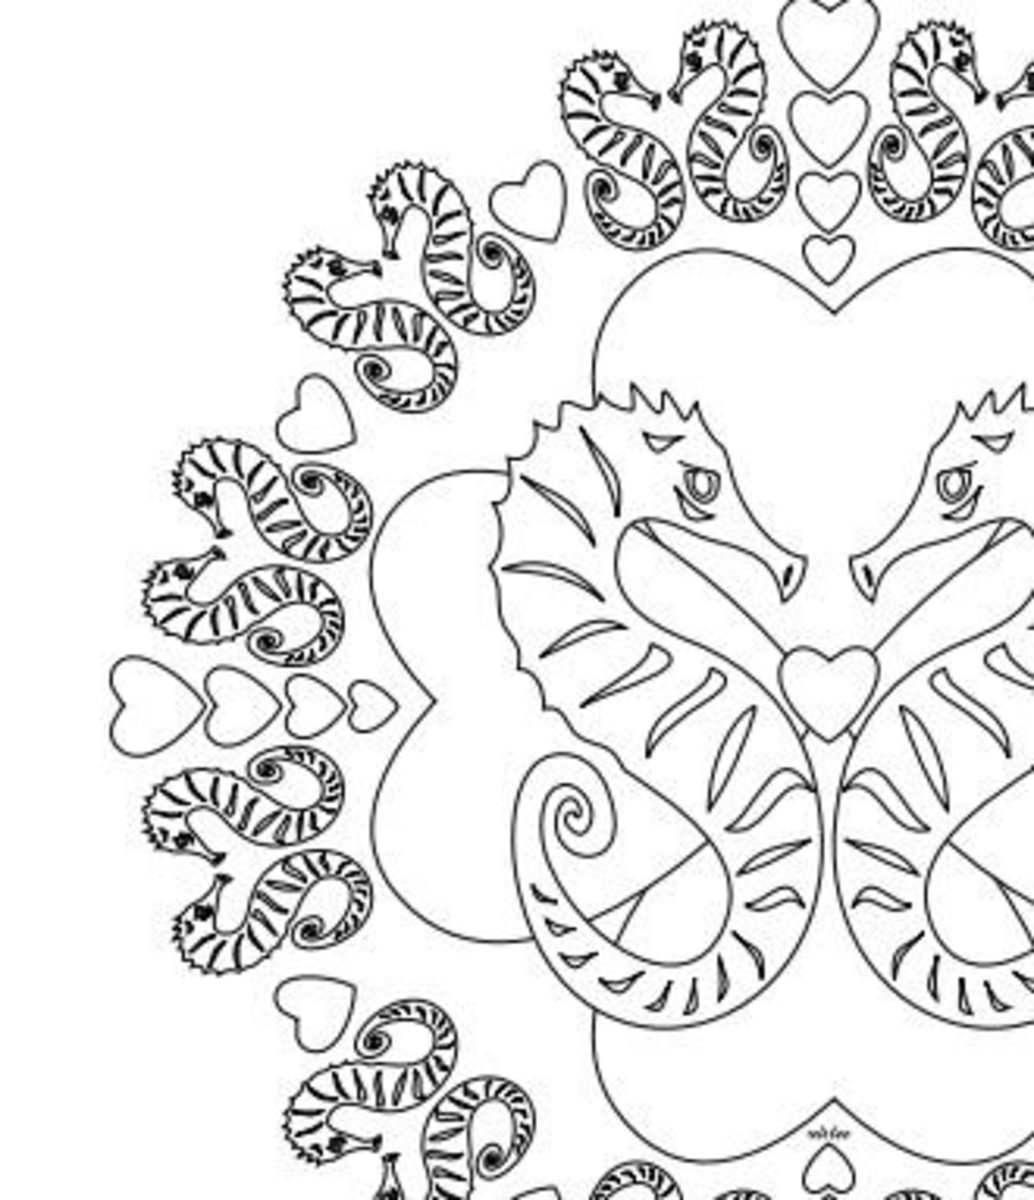 Seahorses and hearts mandala design